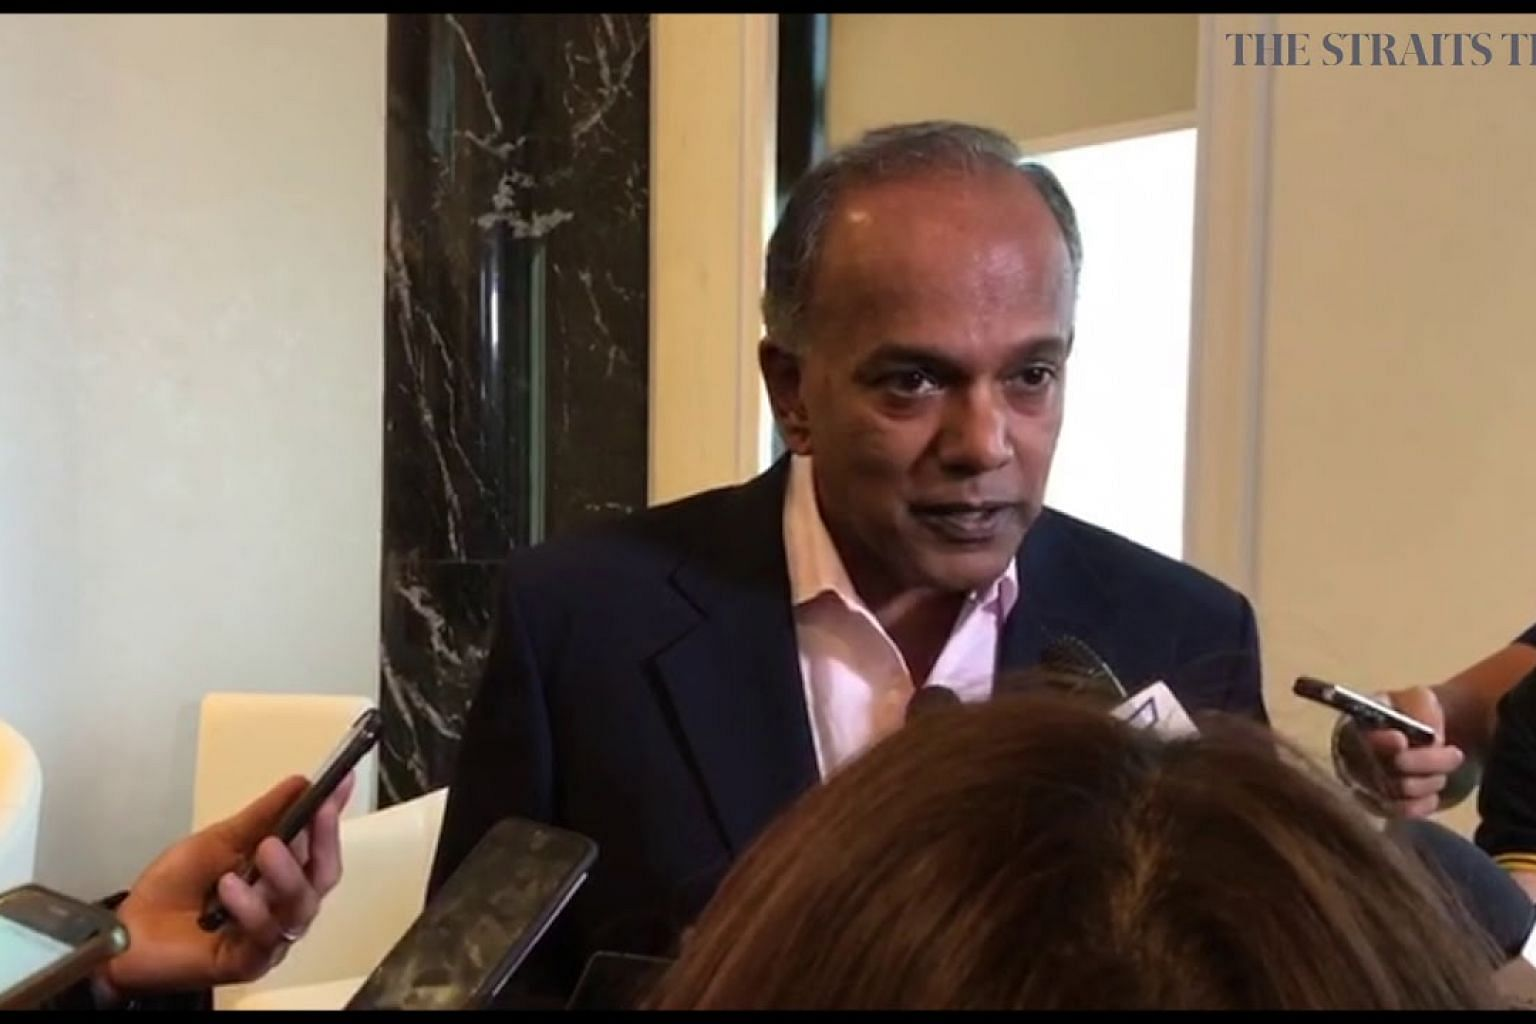 Home Affairs and Law Minister K. Shanmugam on recommendations to better protect vulnerable persons